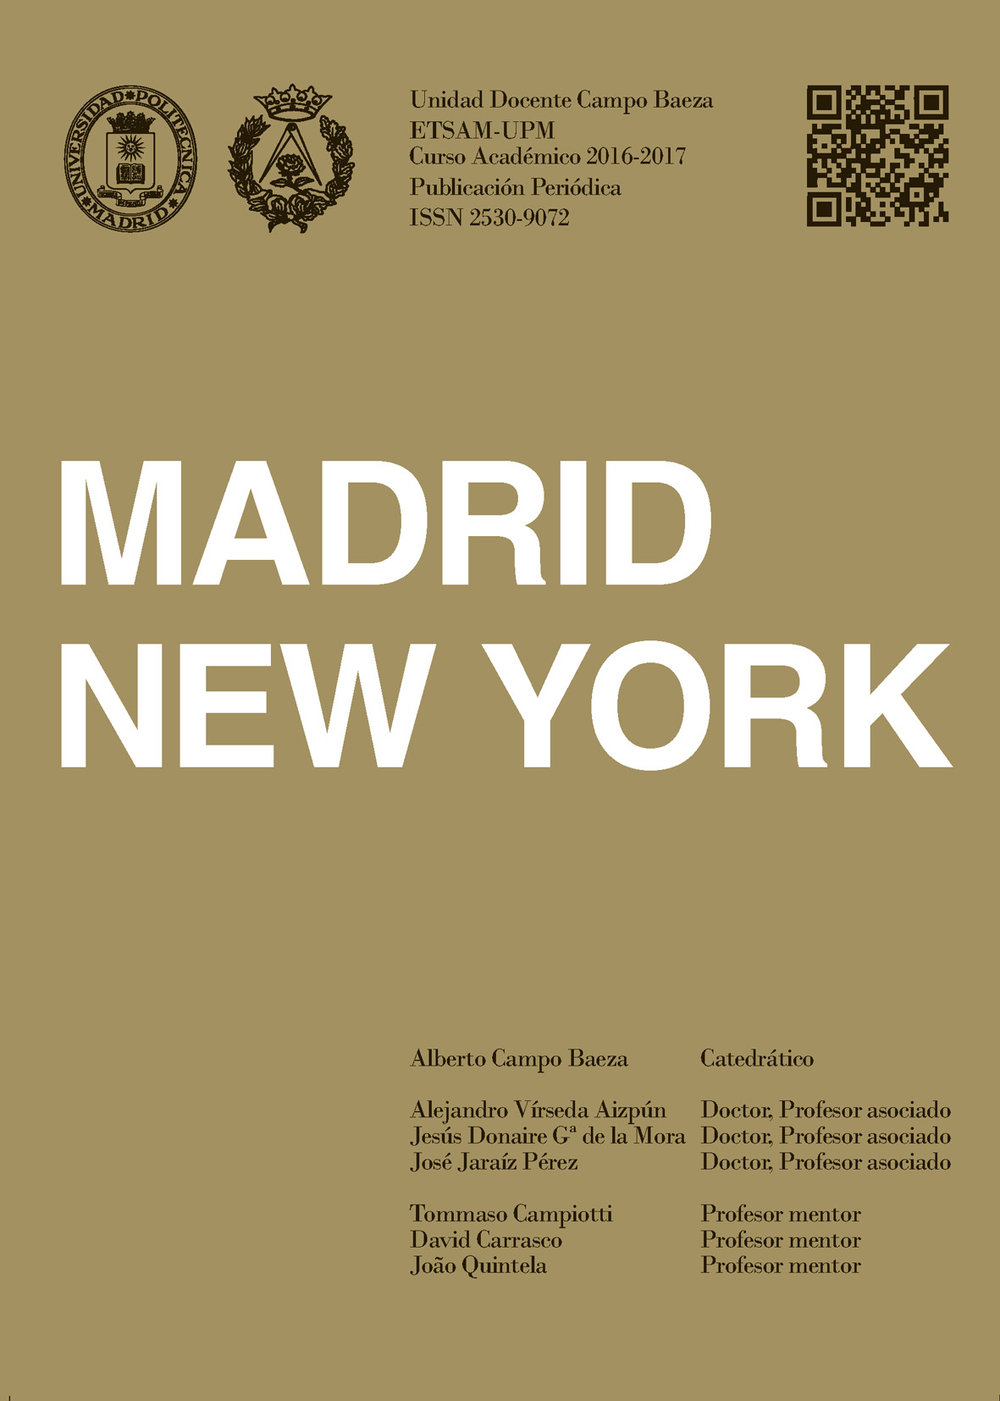 2016-17 UDCB Madrid - New York - 00_portada.jpg